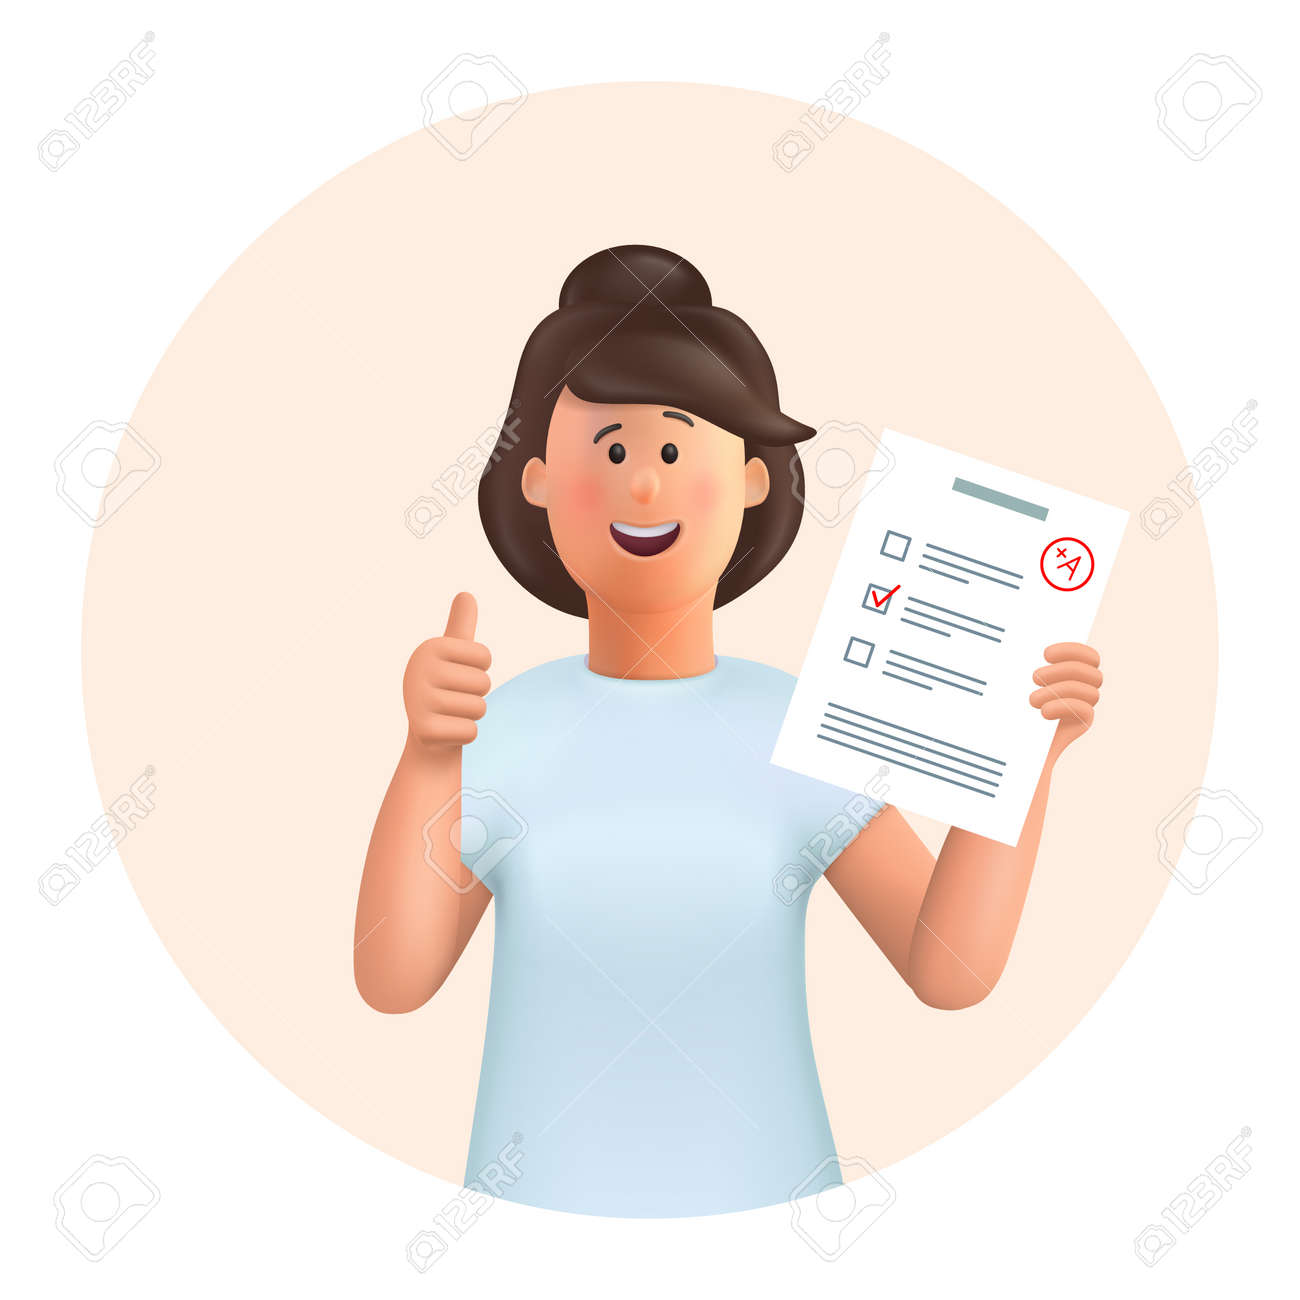 3D cartoon character. Young woman Jane standing with test exam results, education test, questionnaire document showing thumbs up. Education, study, success, like concept. - 168117455